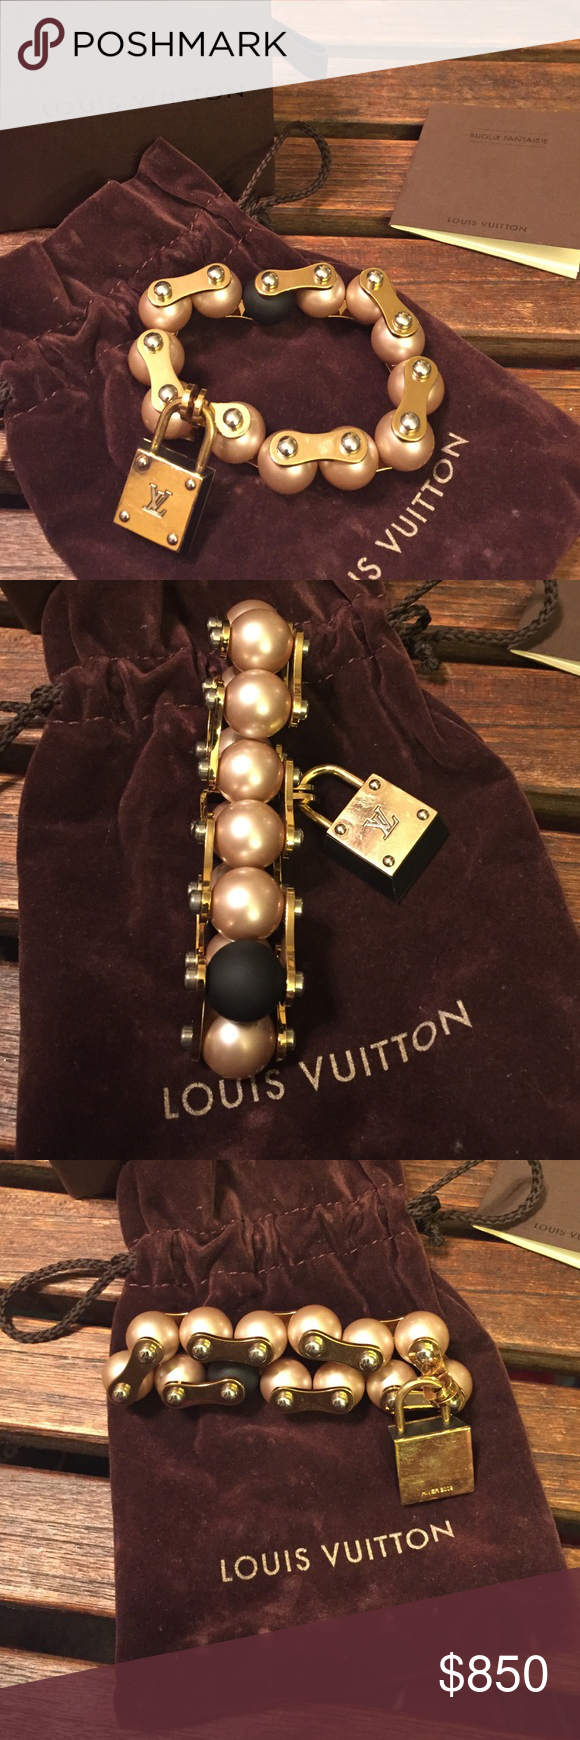 Rare louis vuitton mechanic pearl bracelet pinterest louis